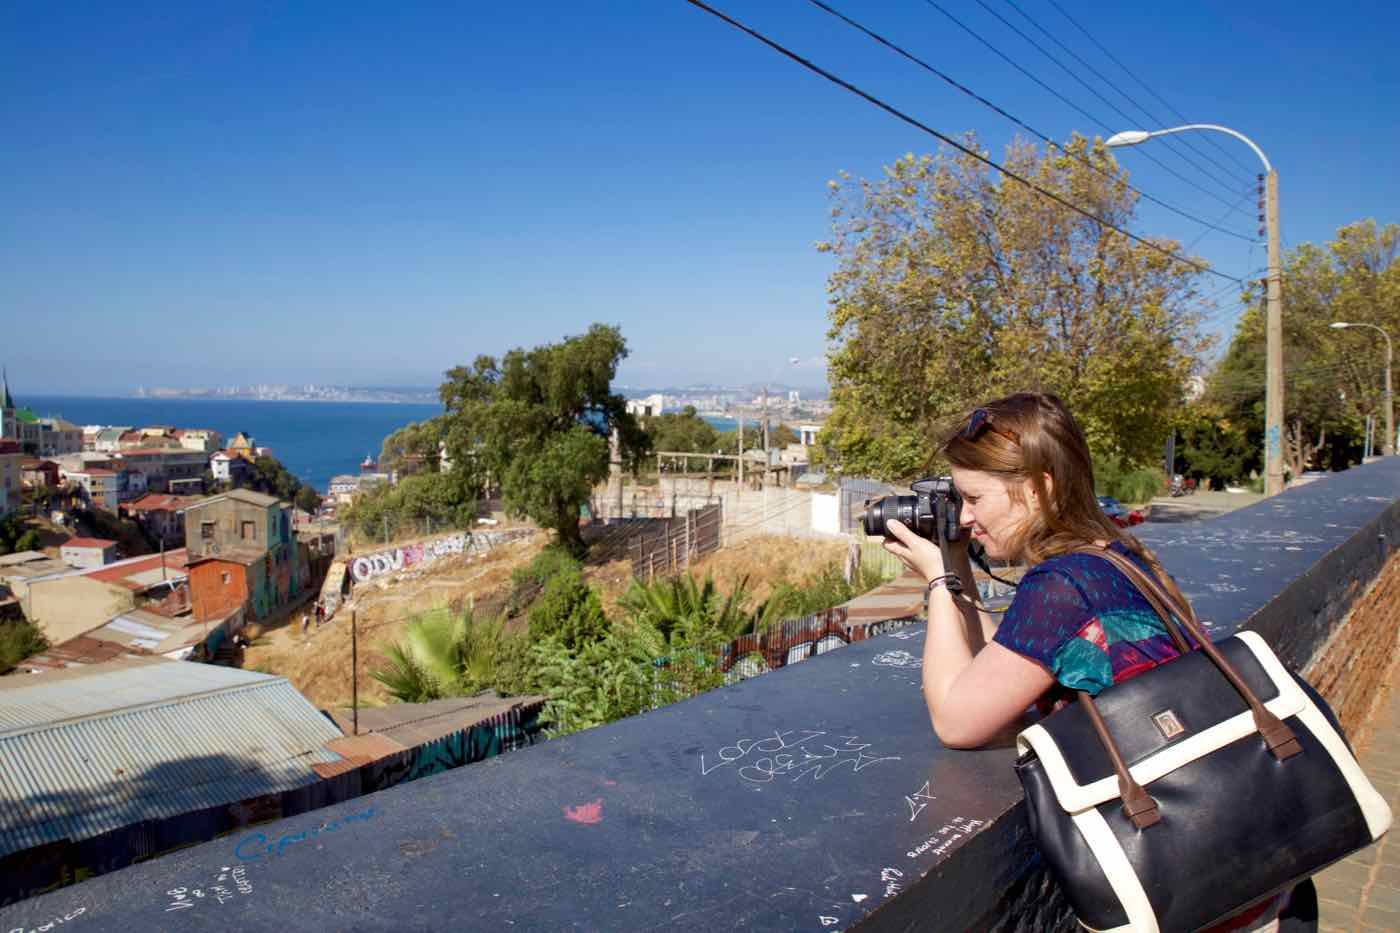 Snapping photos in Valparaiso, Chile